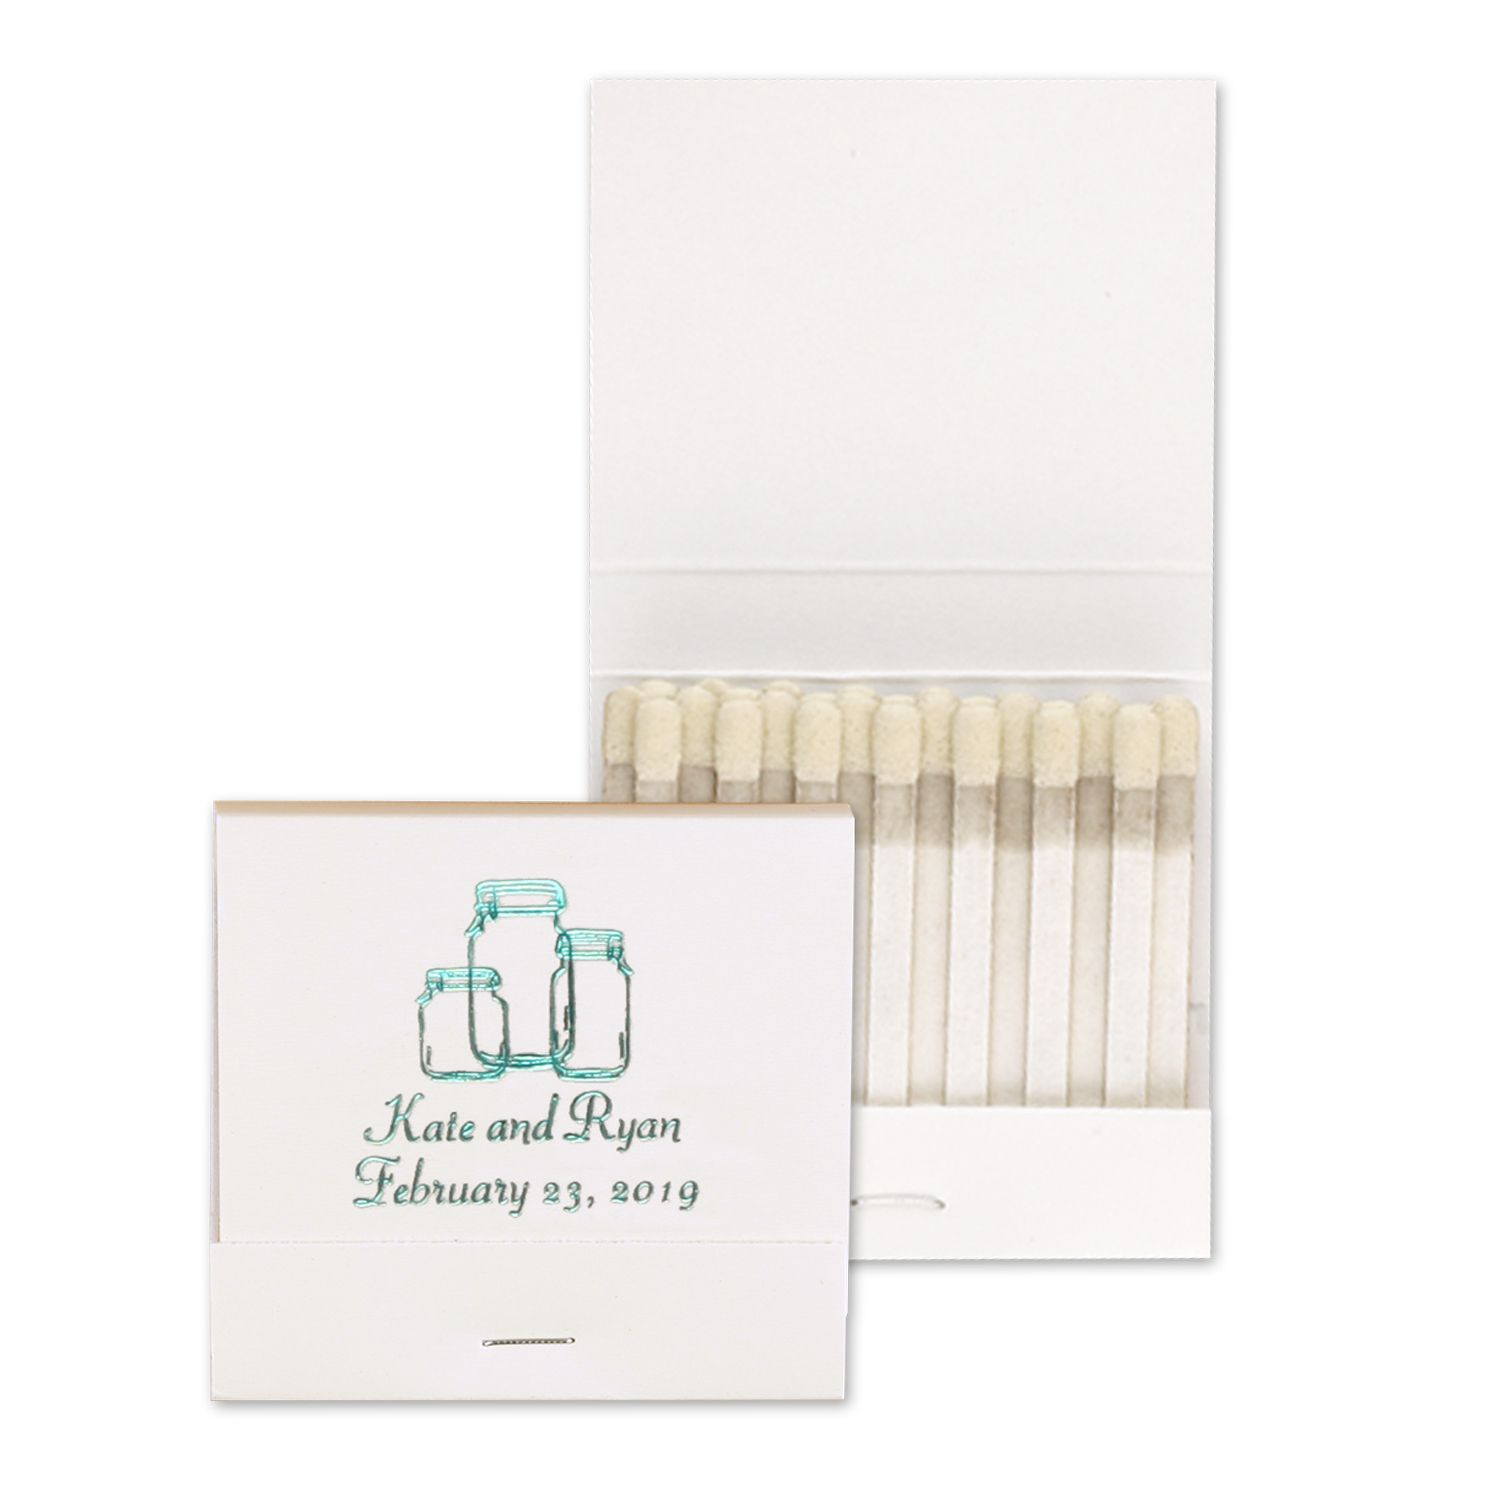 Personalized Wedding Matches - http://bustlingbride.carlsoncraft.com ...